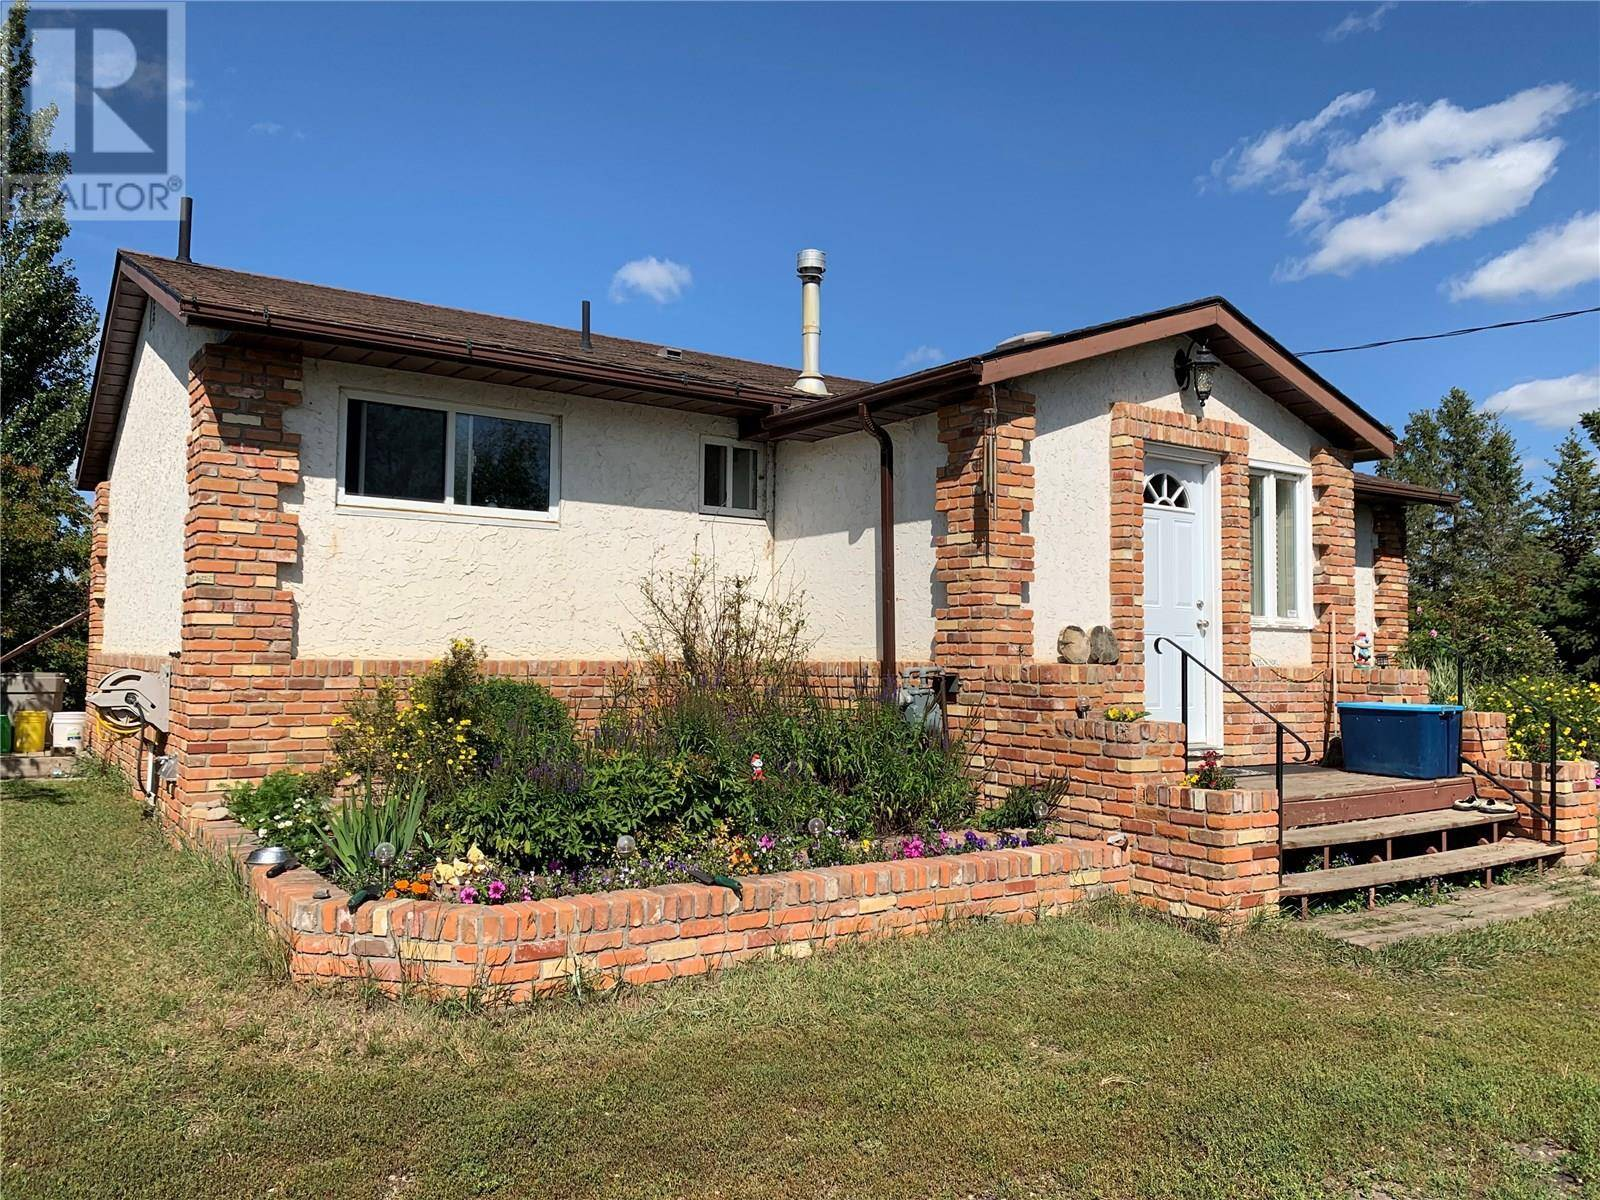 House for sale at  Alingly 355 Rm Of Buckland Hy Buckland Rm No. 491 Saskatchewan - MLS: SK784491